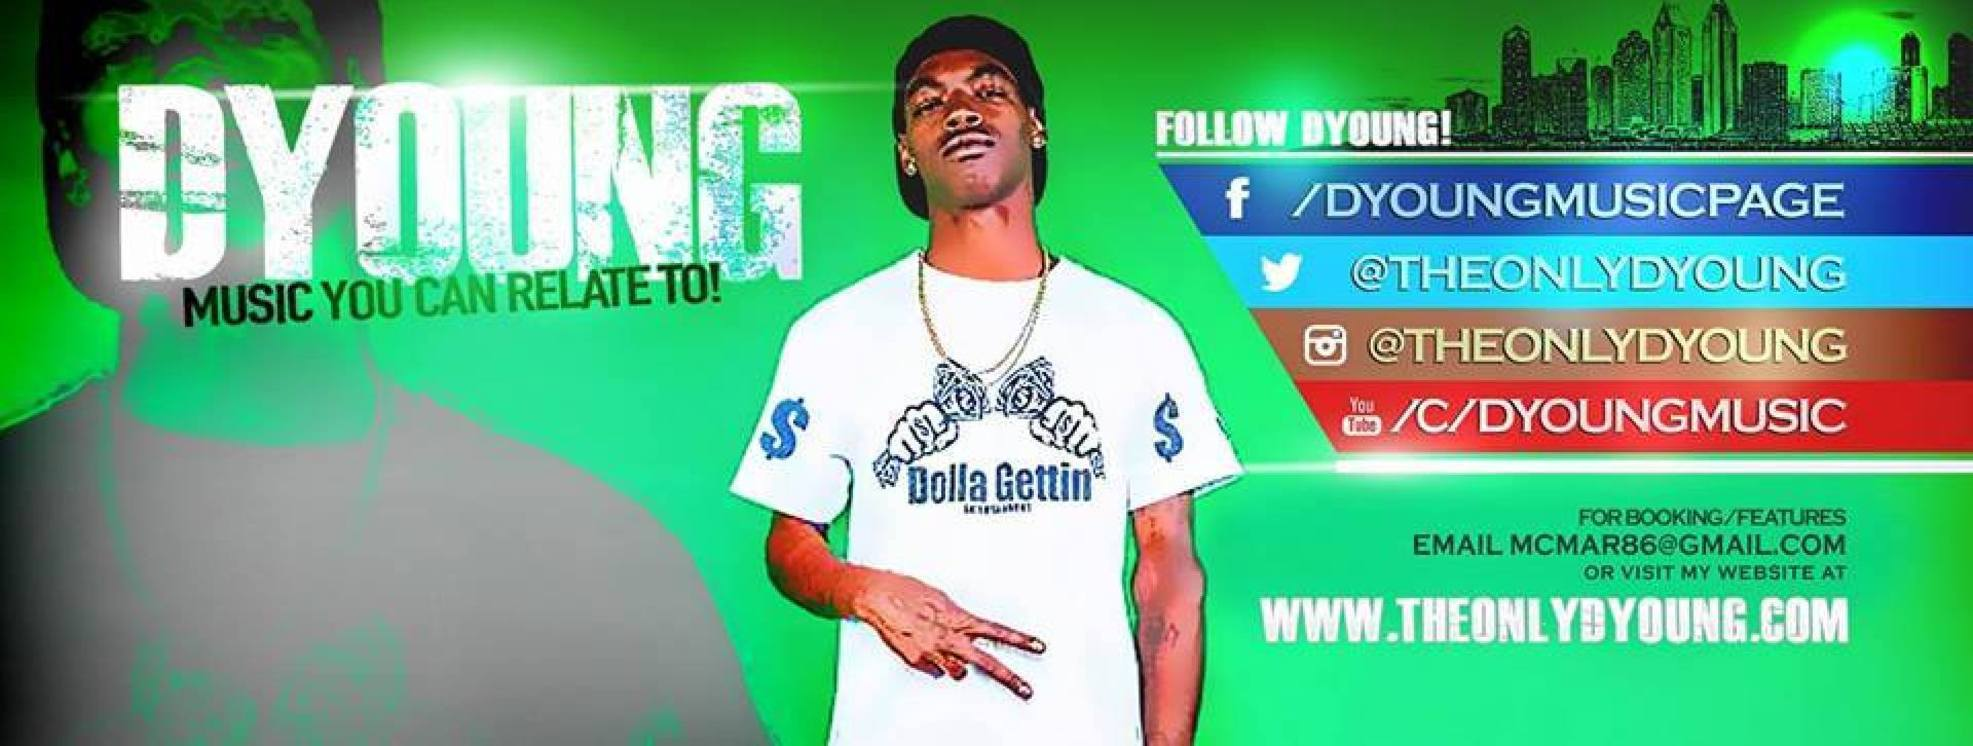 Dyoung 2015 cover pic copy